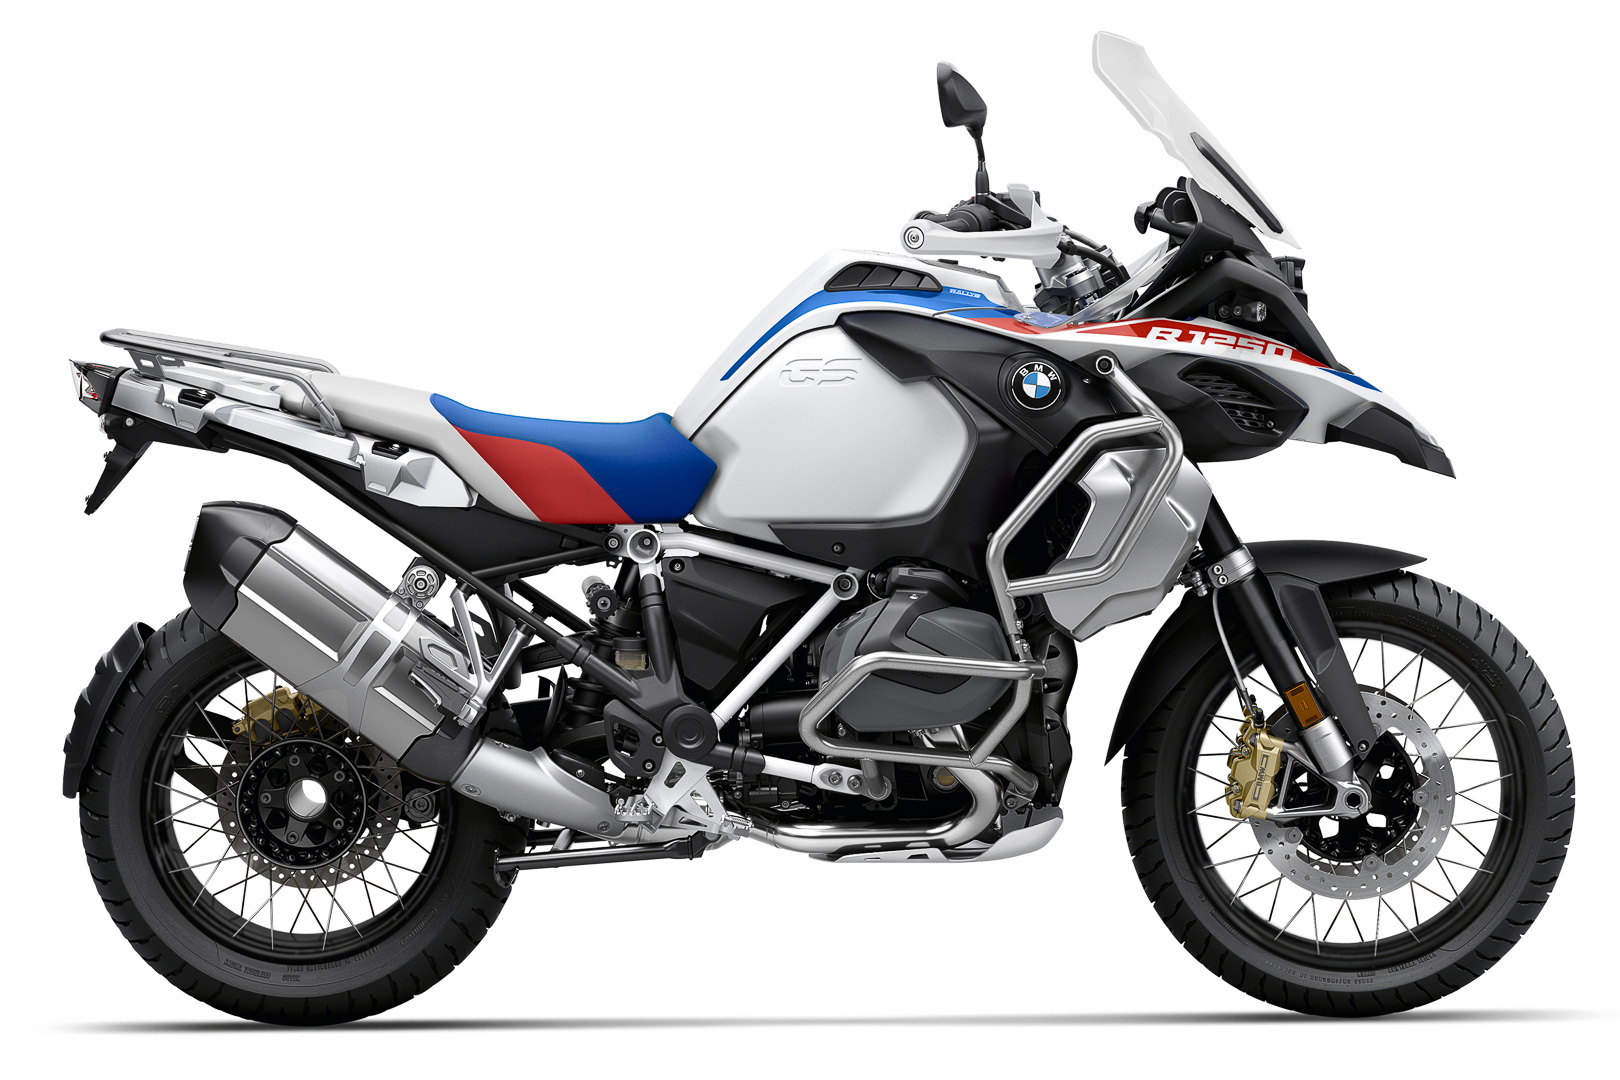 2022 BMW R 1250 GS Adventure First Look: For Sale